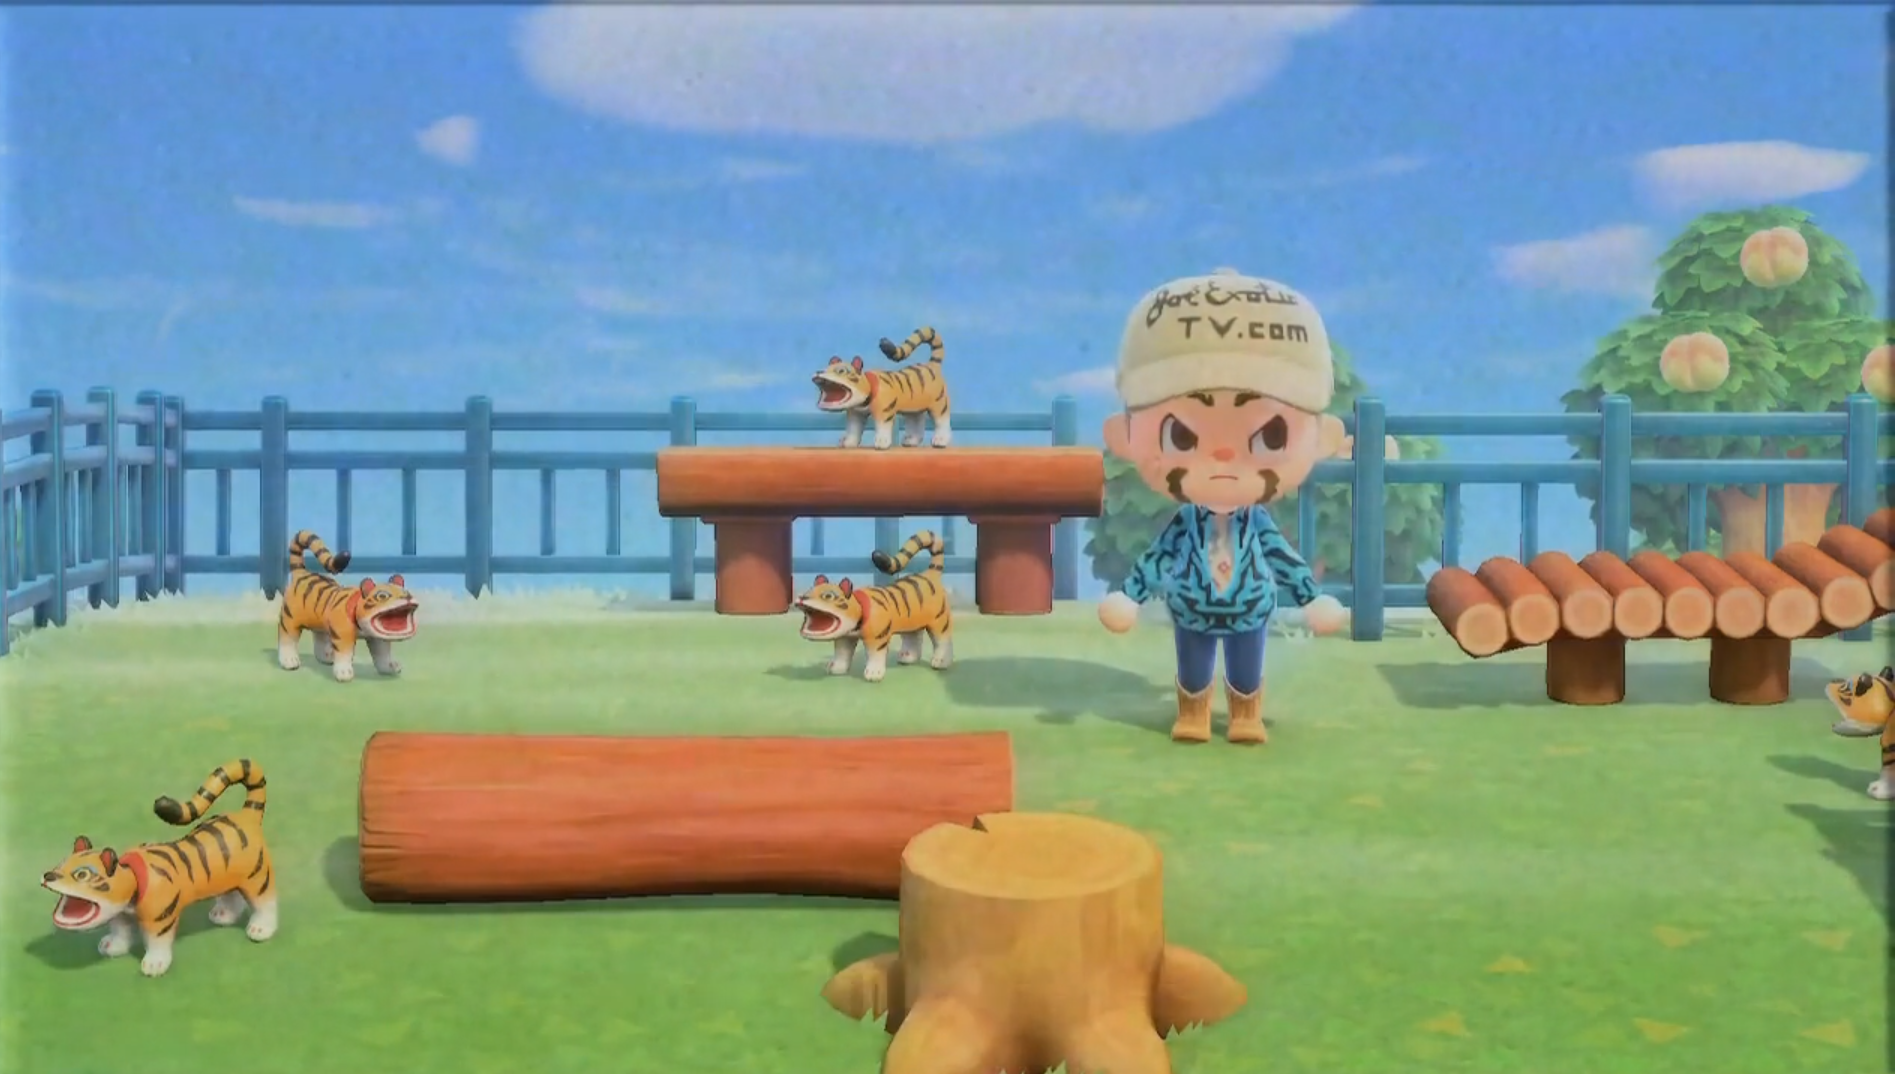 Tiger King main character Joe Exotic has made his Animal Crossing: New Horizons debut thanks to a hilarious crossover trailer.